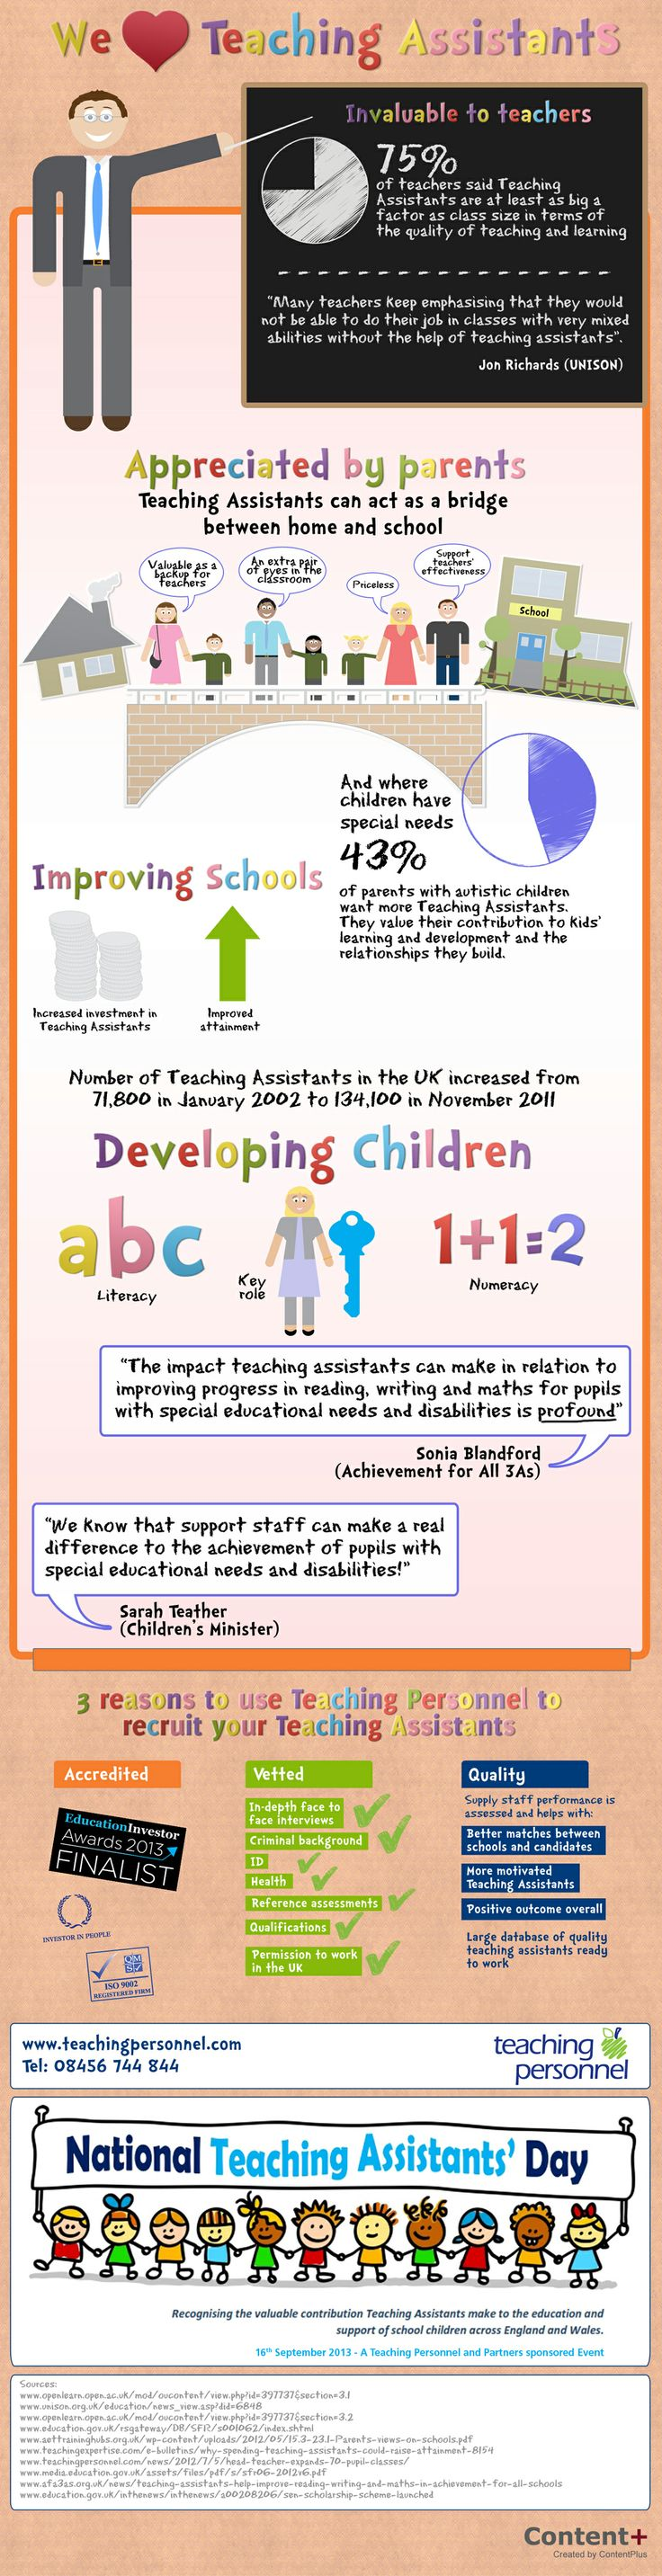 Our 'We Love Teaching Assistants' Infographic